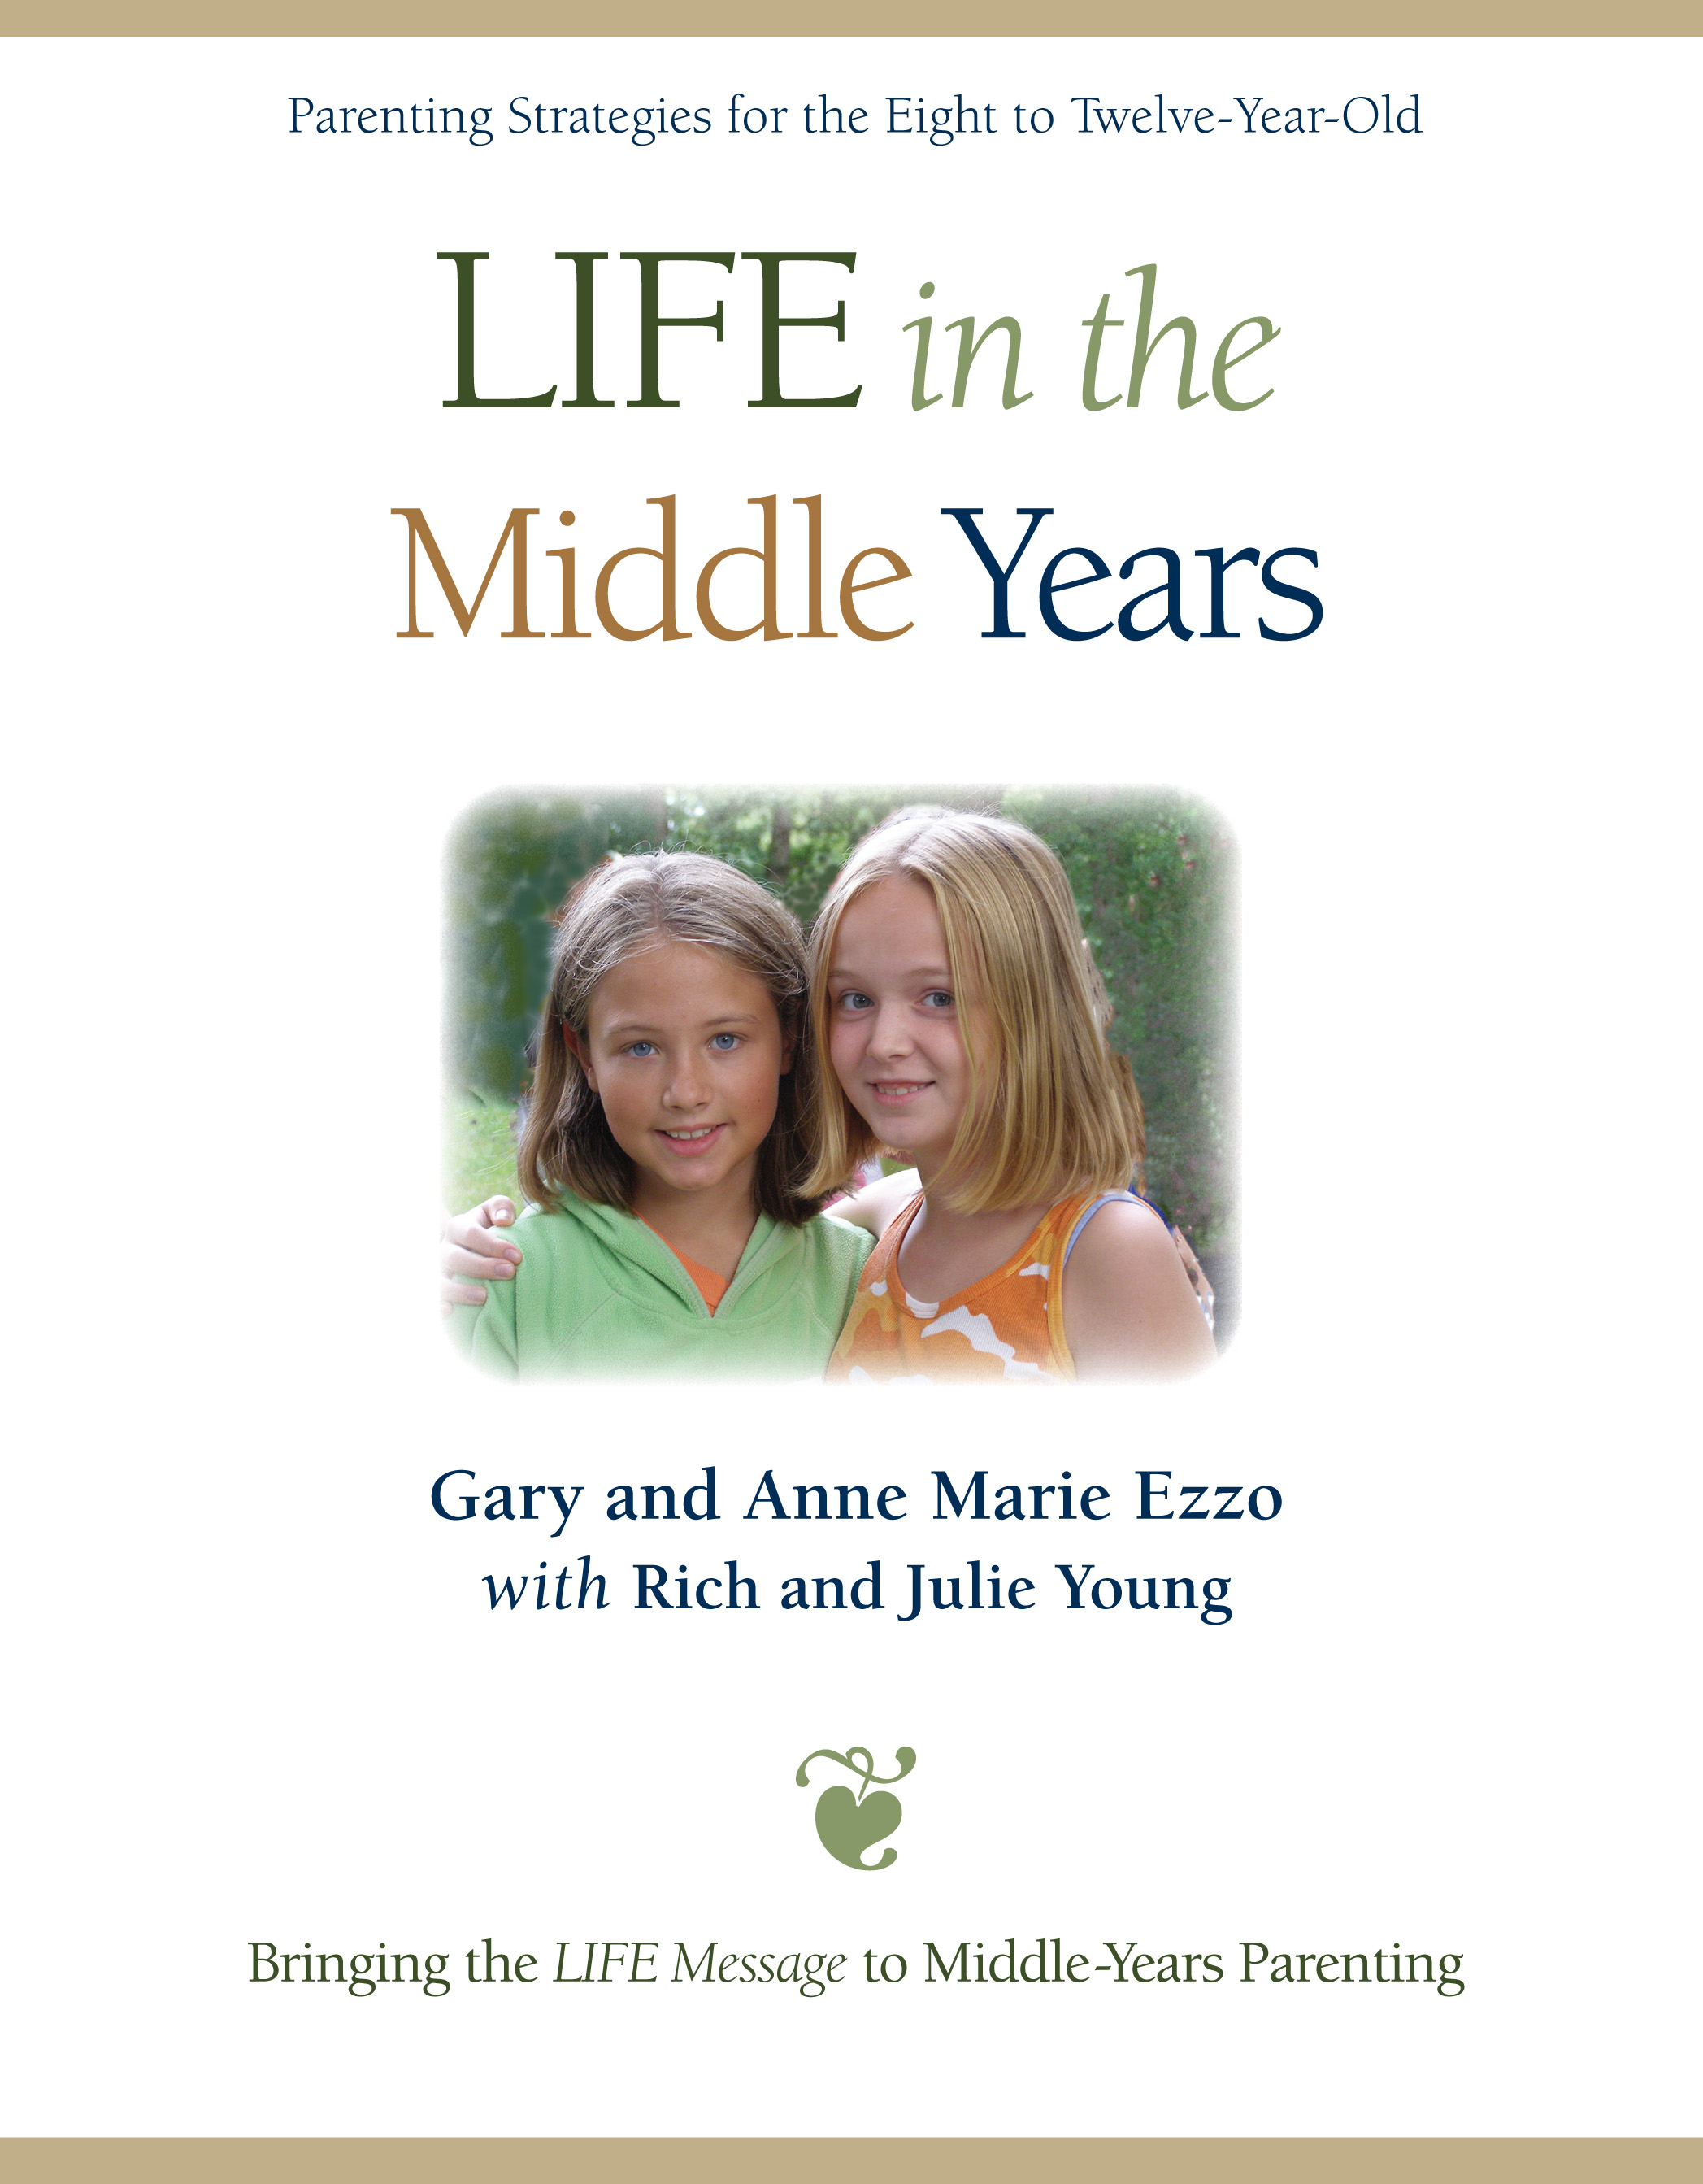 It is our firm conviction that rightly meeting the small challenges of the middle-years significantly reduces the likelihood of big challenges in the teen years. In other words, the groundwork you lay now will impact your relationship with your children through all of adolescence and even long after they're grown. Therefore, this book is as much about building a strong relationship with your middle-years child now, as it is about preventing serious teen-parent conflicts in the future.